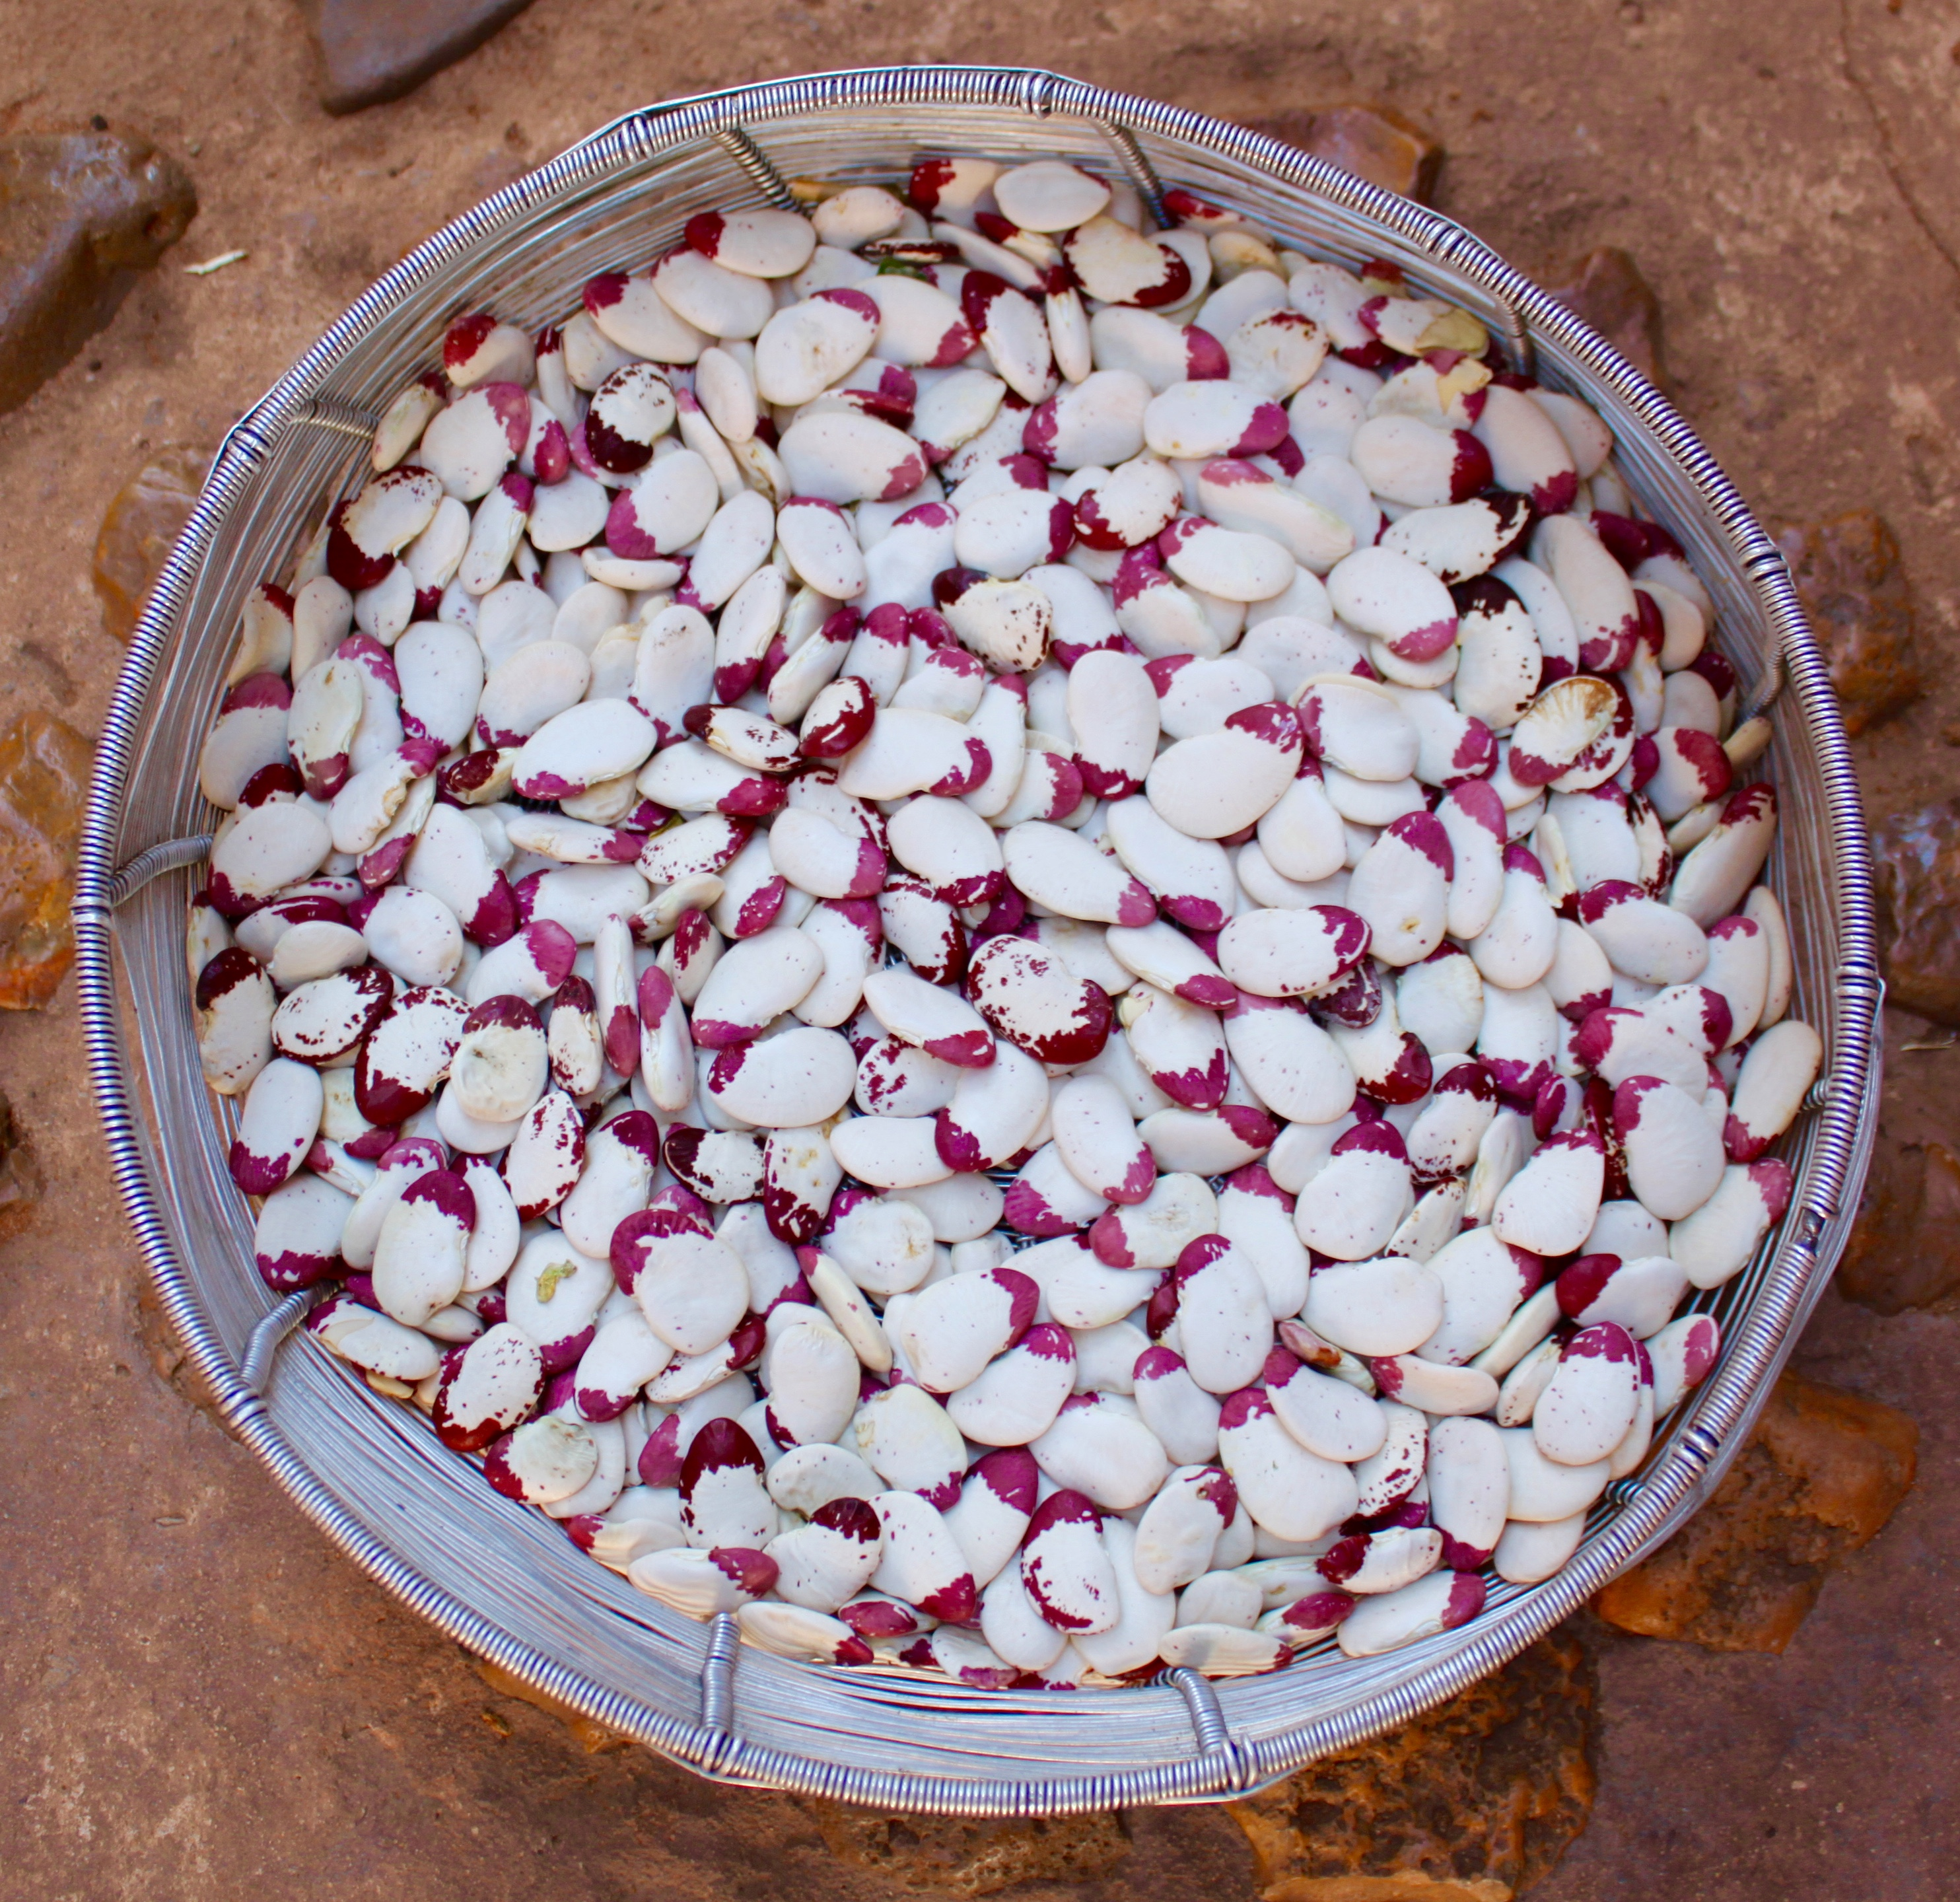 Dried lima beans, which are left in their pods on the vine to die before being picked.